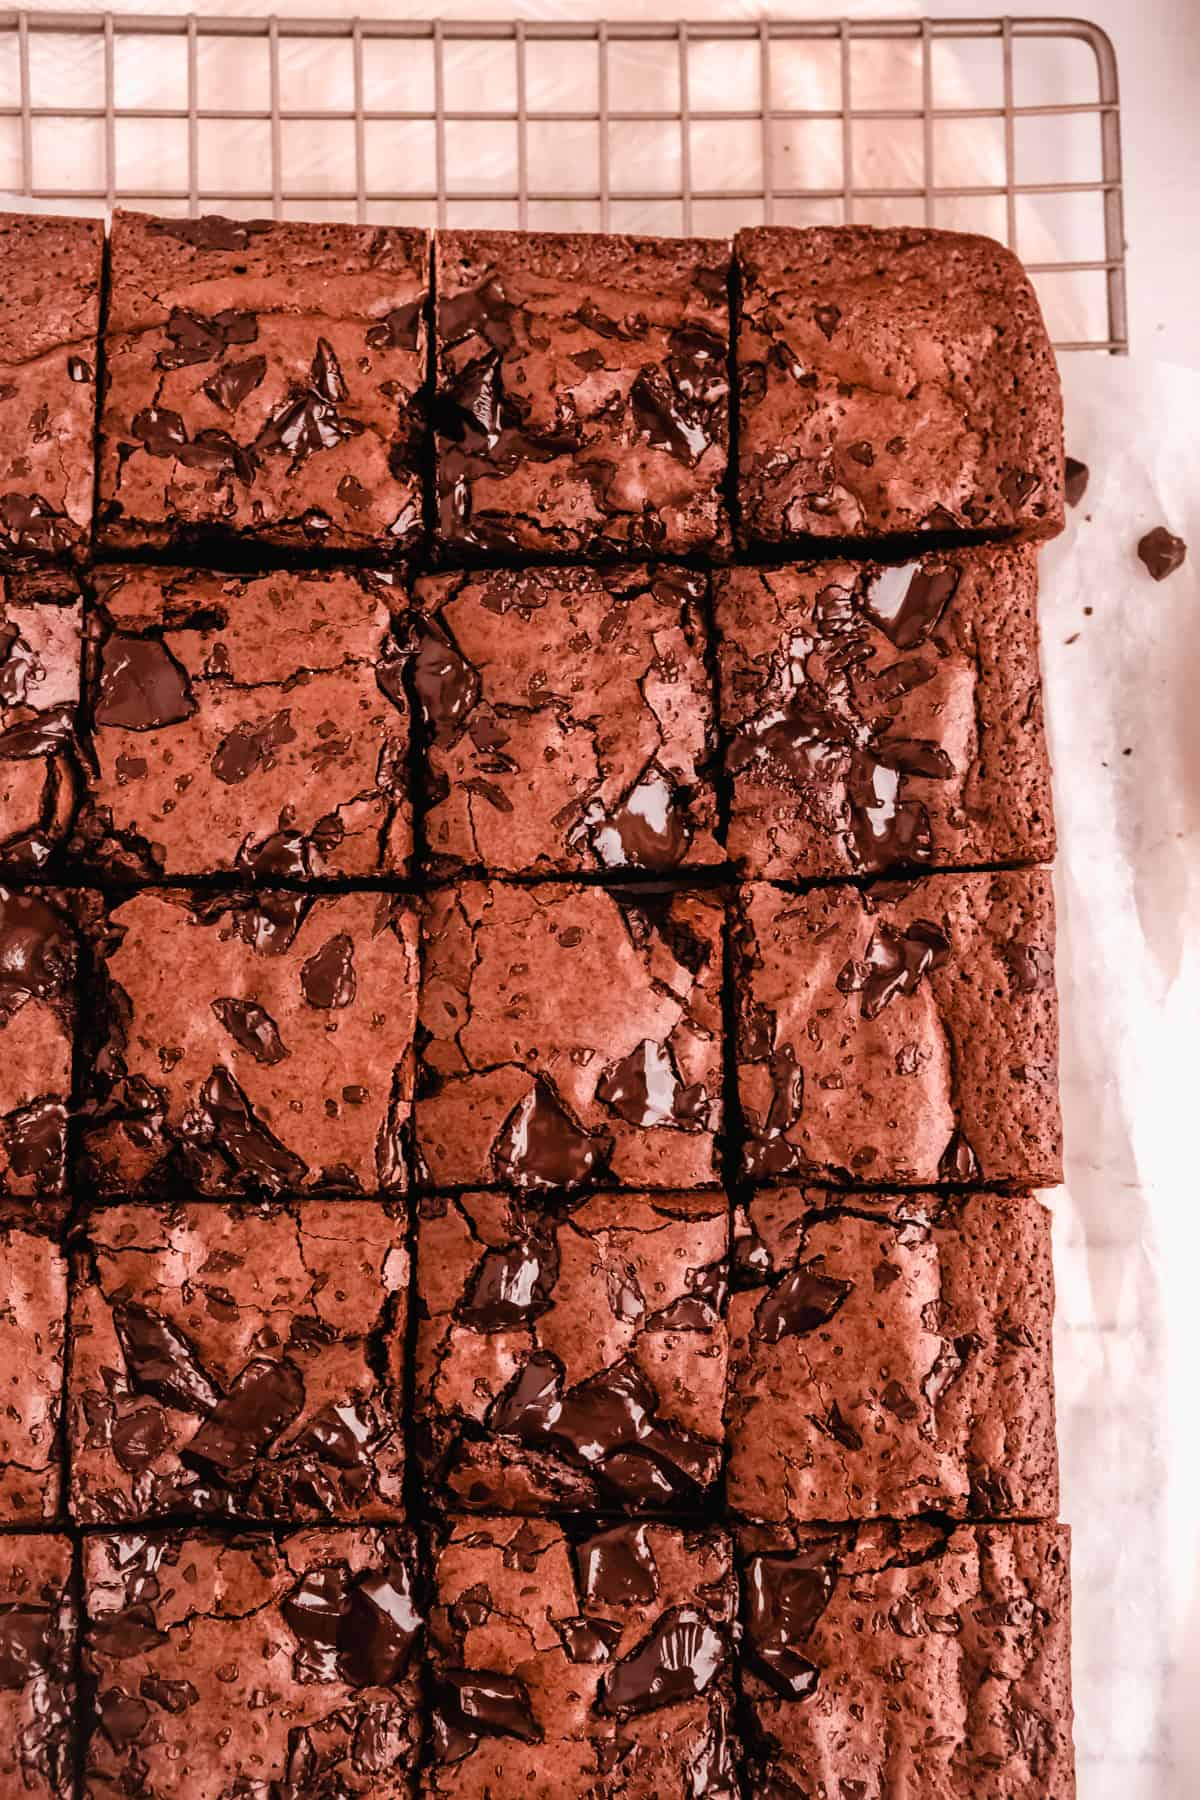 a full pan of fudgy gluten free brownies cut into squares on a wire cooling rack